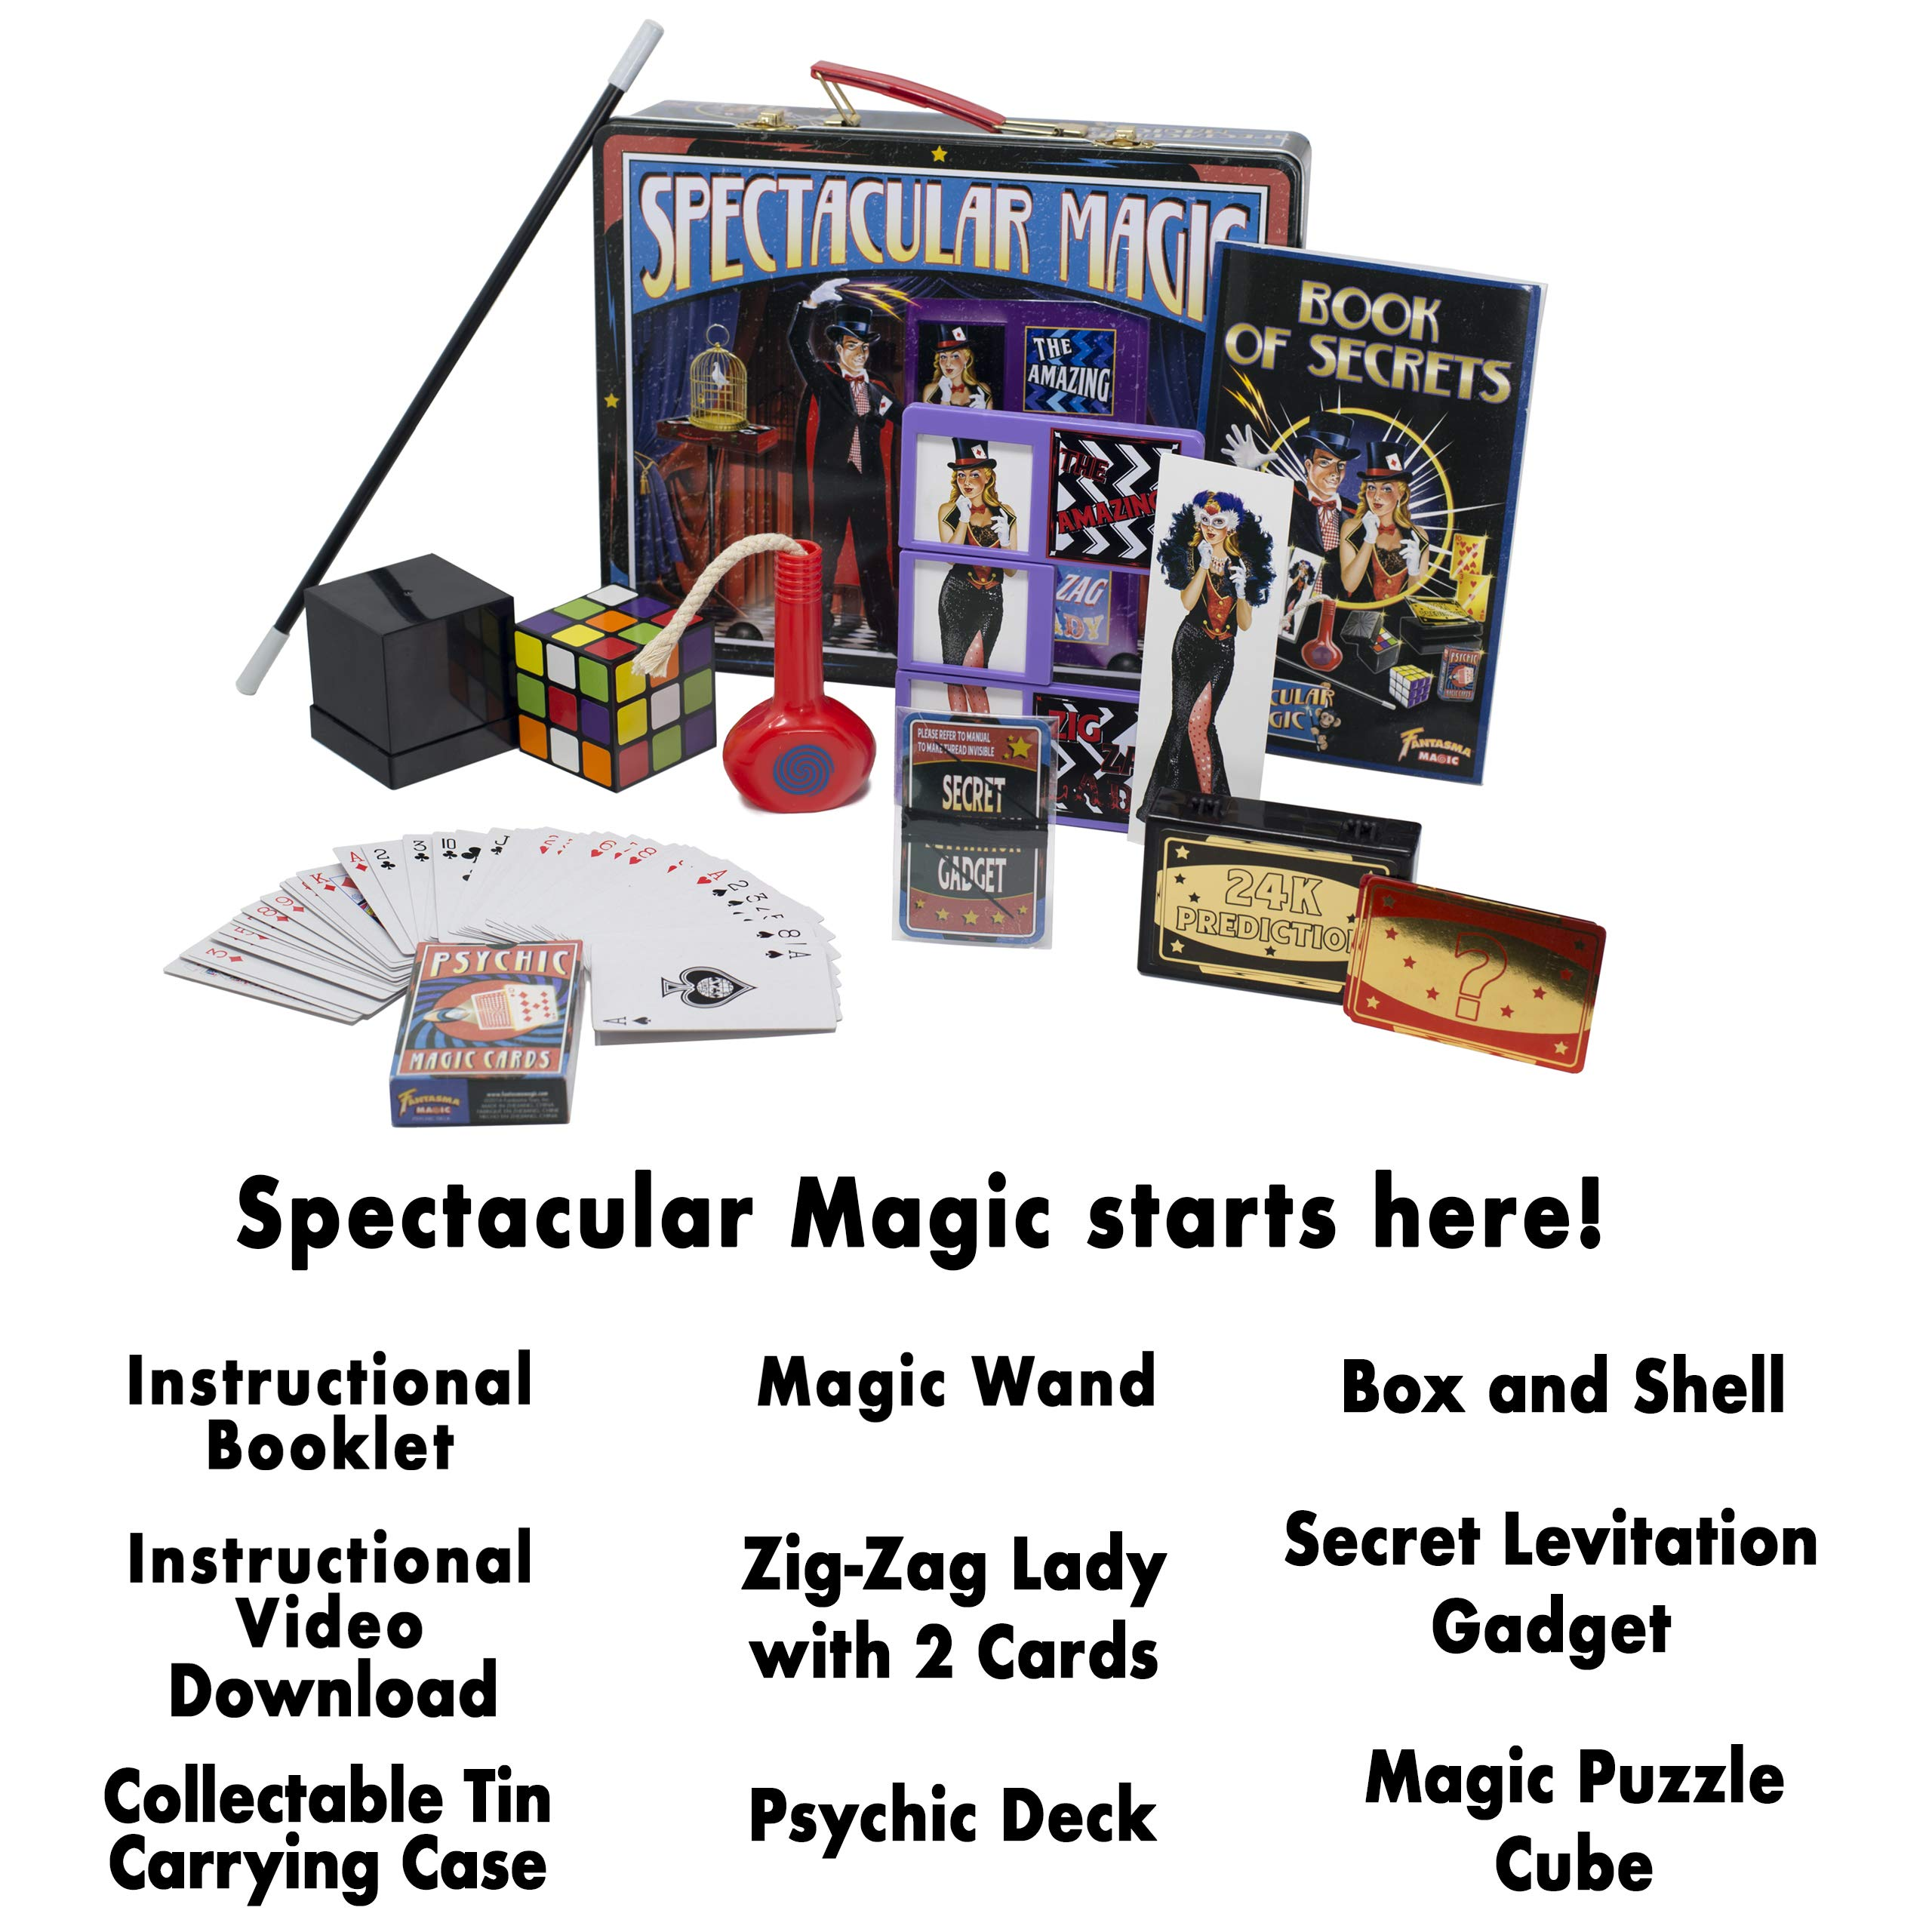 Fantasma Spectacular Magic Box Set for Kids - Magic Kit and Card Trick - Learn 135 Magic Tricks - Great for Boys and Girls 7 Years and Older        by Fantasma (Image #3)